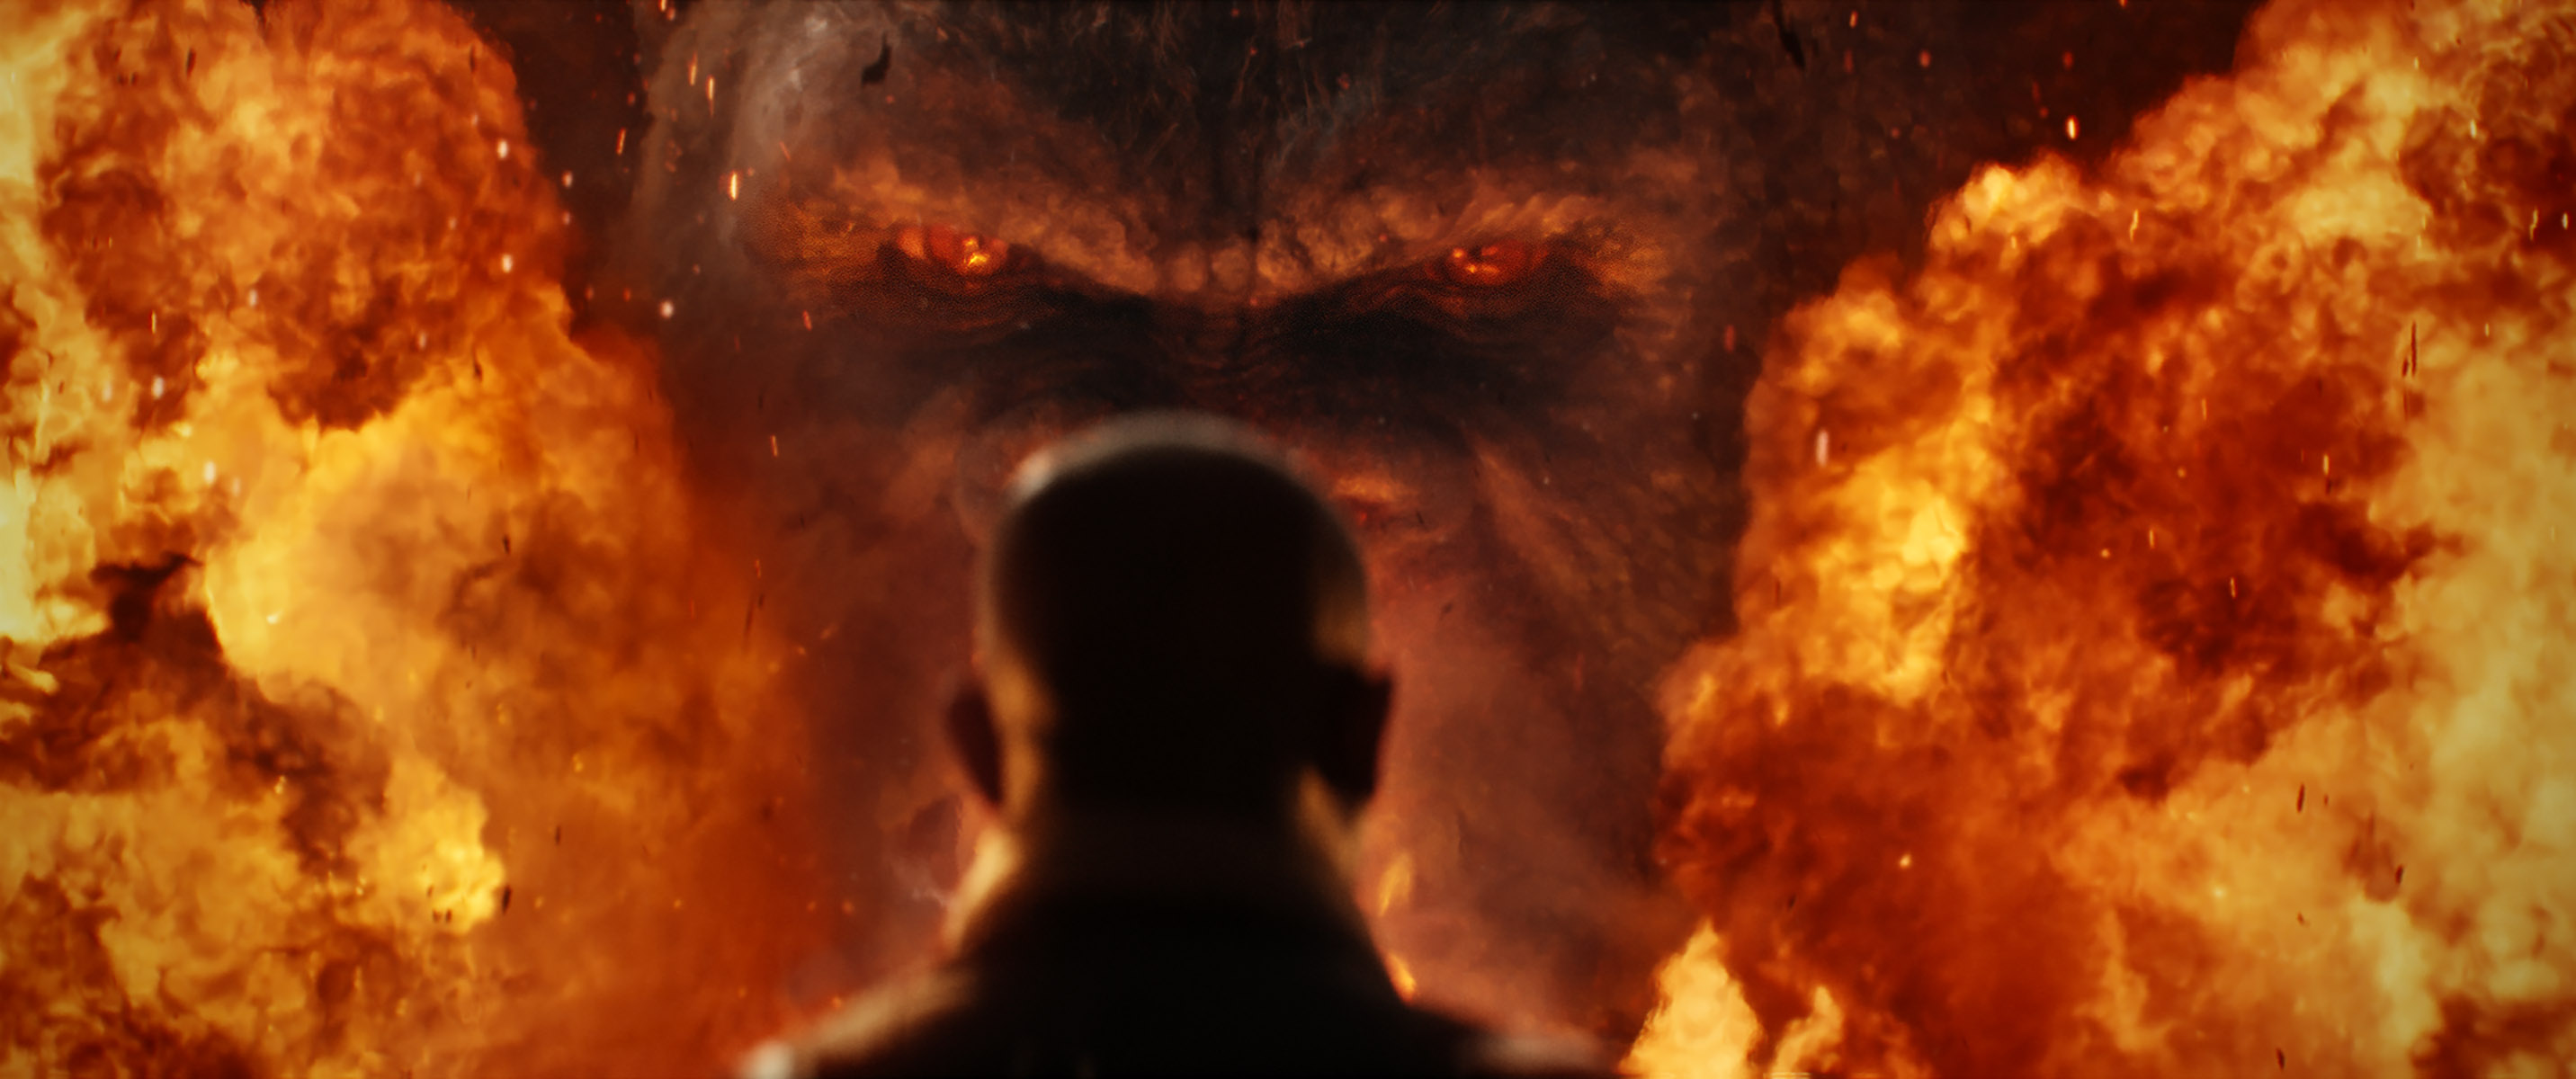 Kong: Skull Island: Kong: Skull Island Omits The Most Important Part Of King